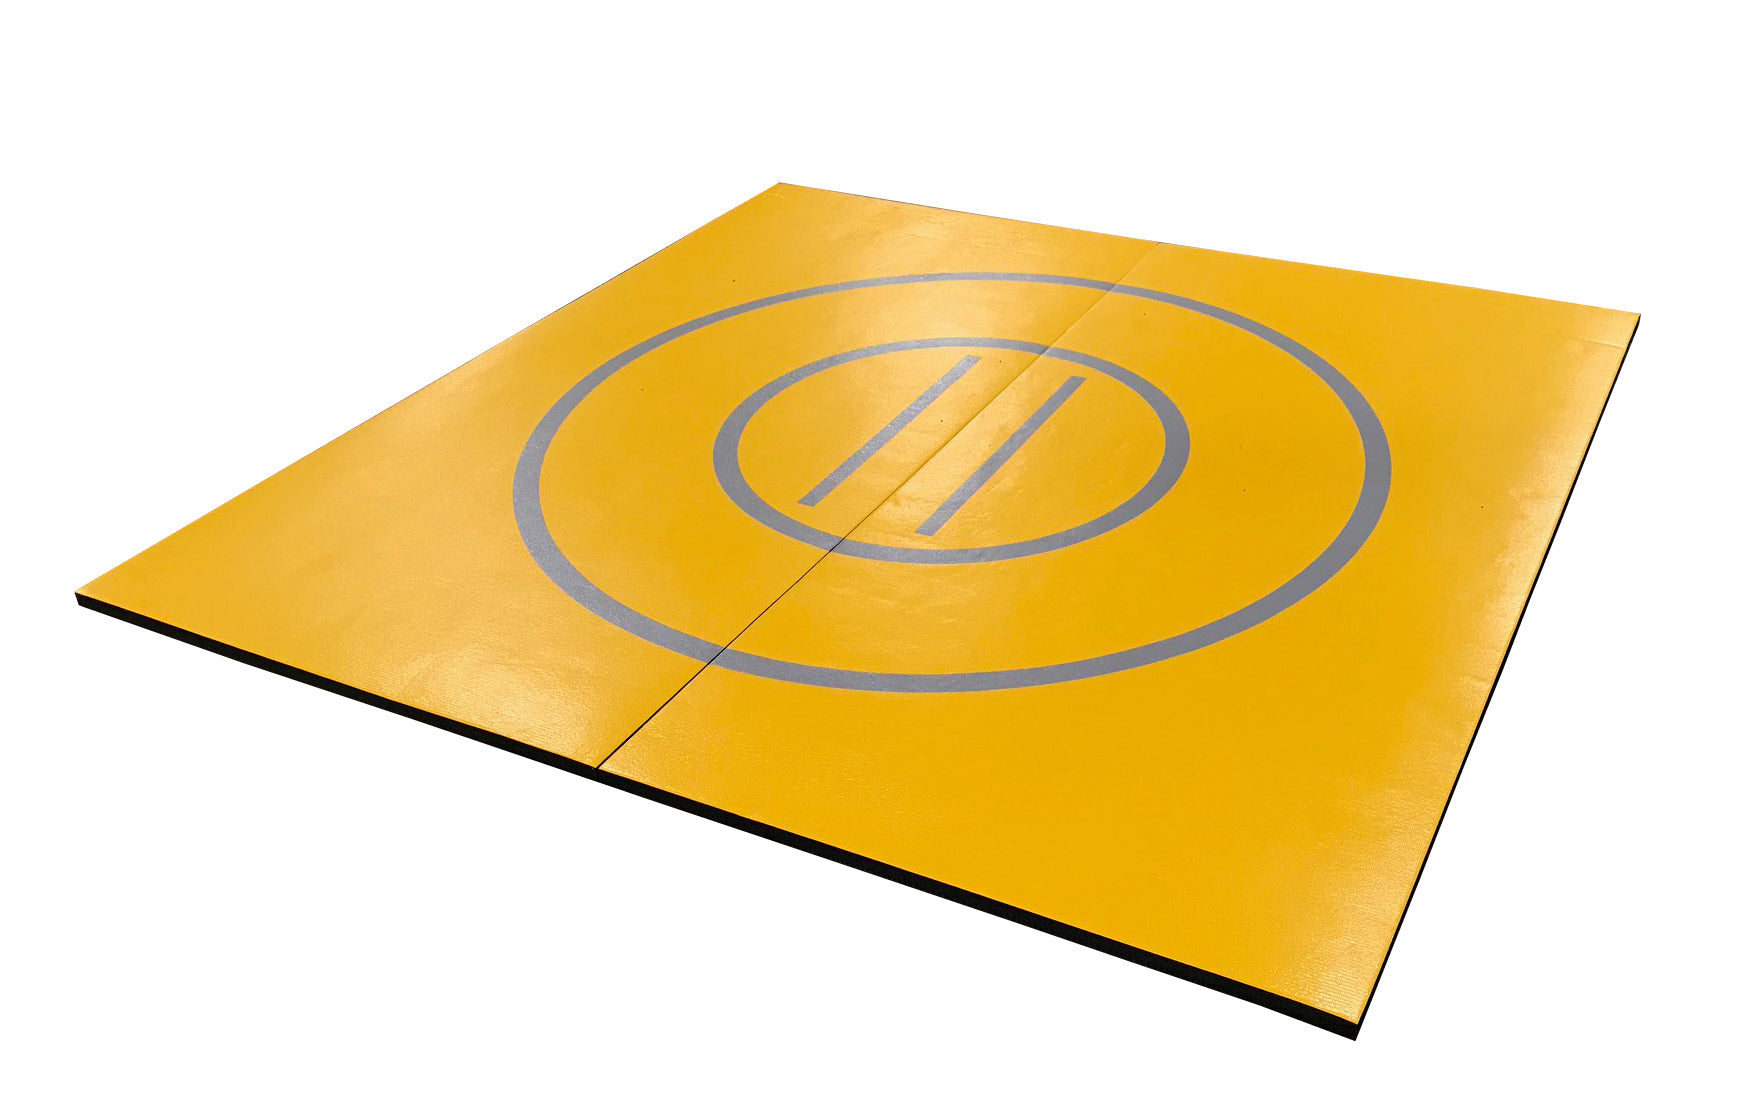 "8' x 8' x 1 3/8"" Gold and Gray Roll-Up Wrestling Mat"